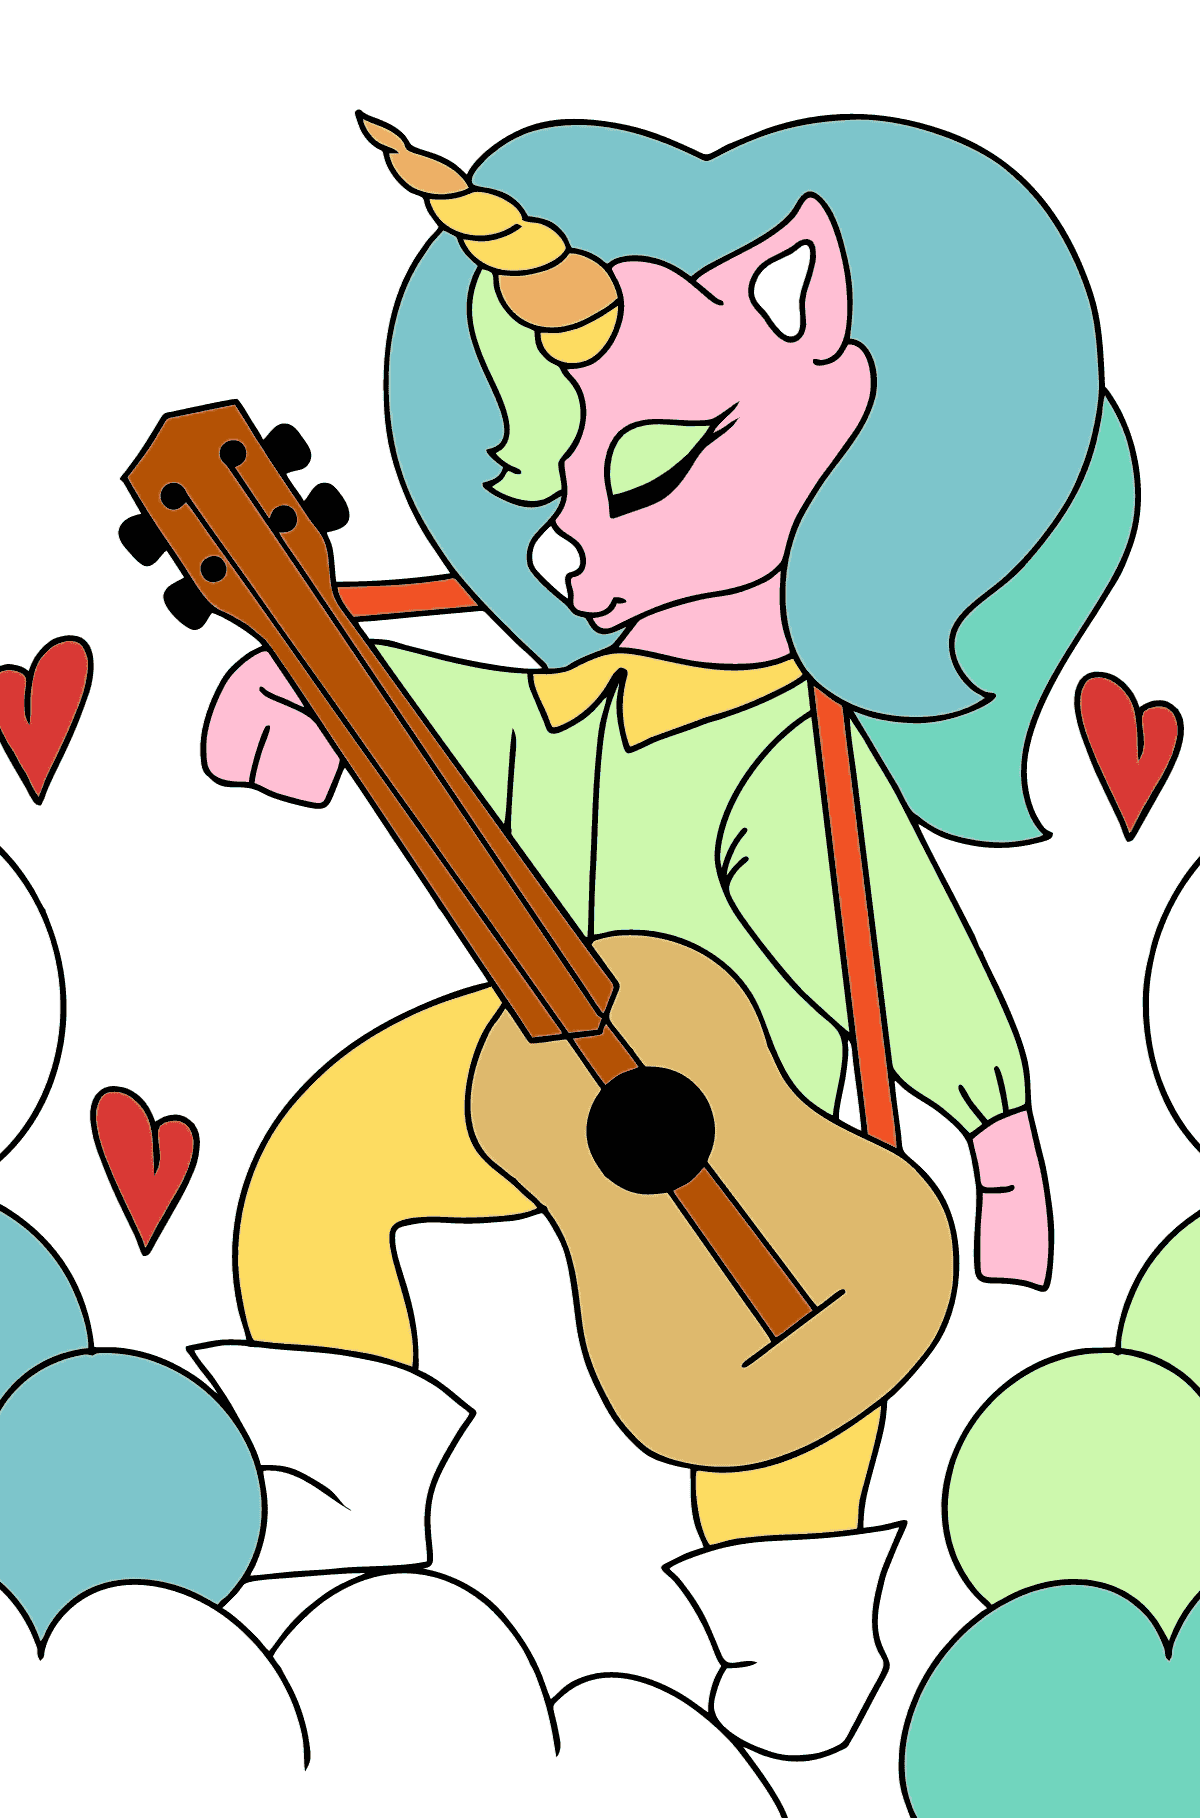 Coloring Page - A Unicorn with a Guitar - Coloring Pages for Kids